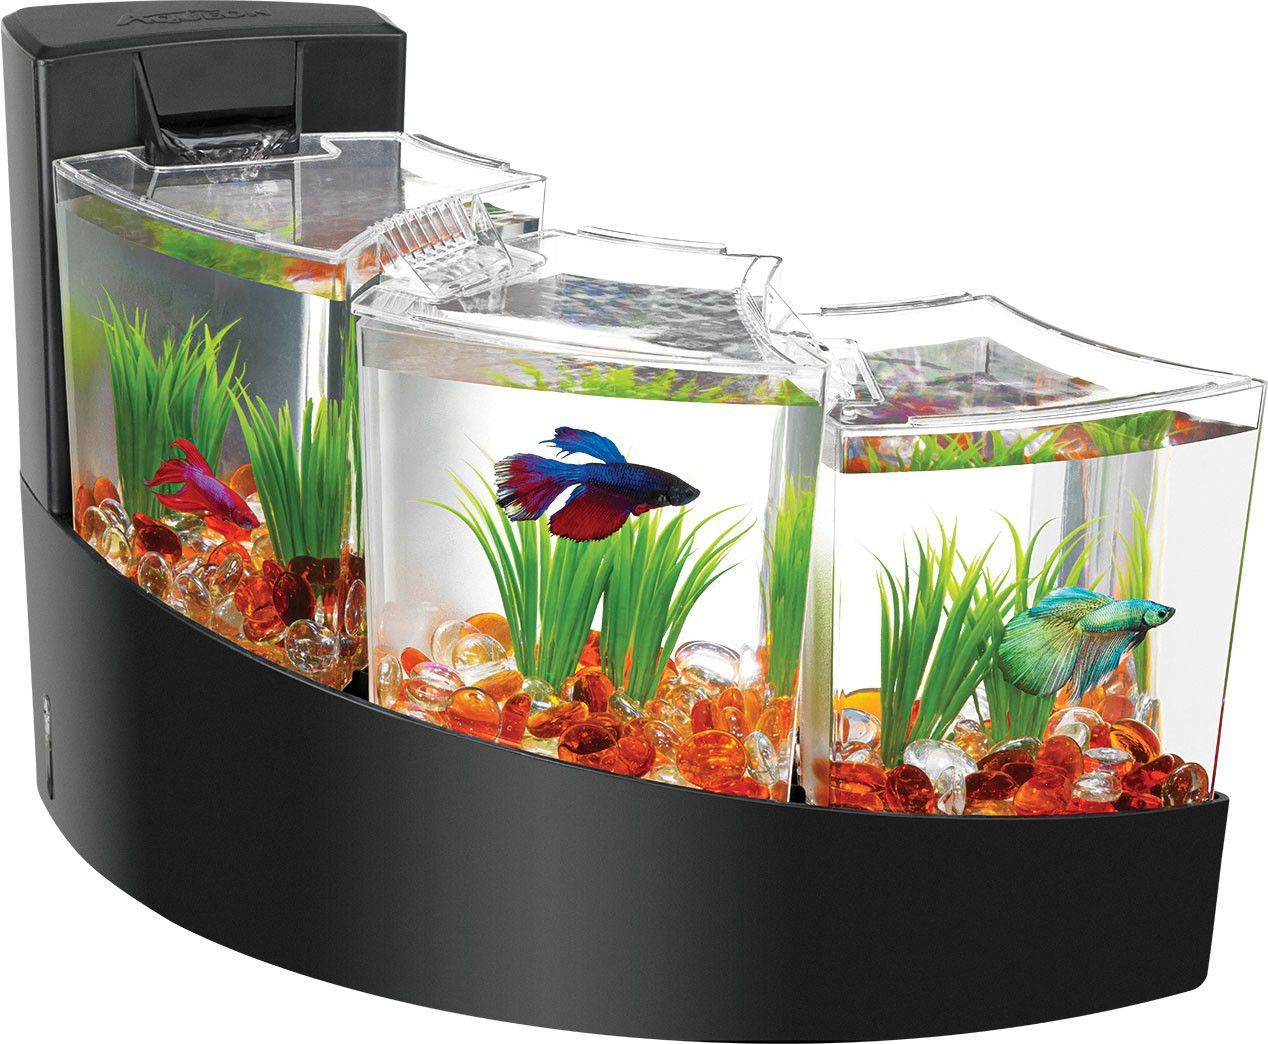 Décoration Aquarium Pour Combattant Aqueon Betta Falls Kit Bettas Pinterest Betta